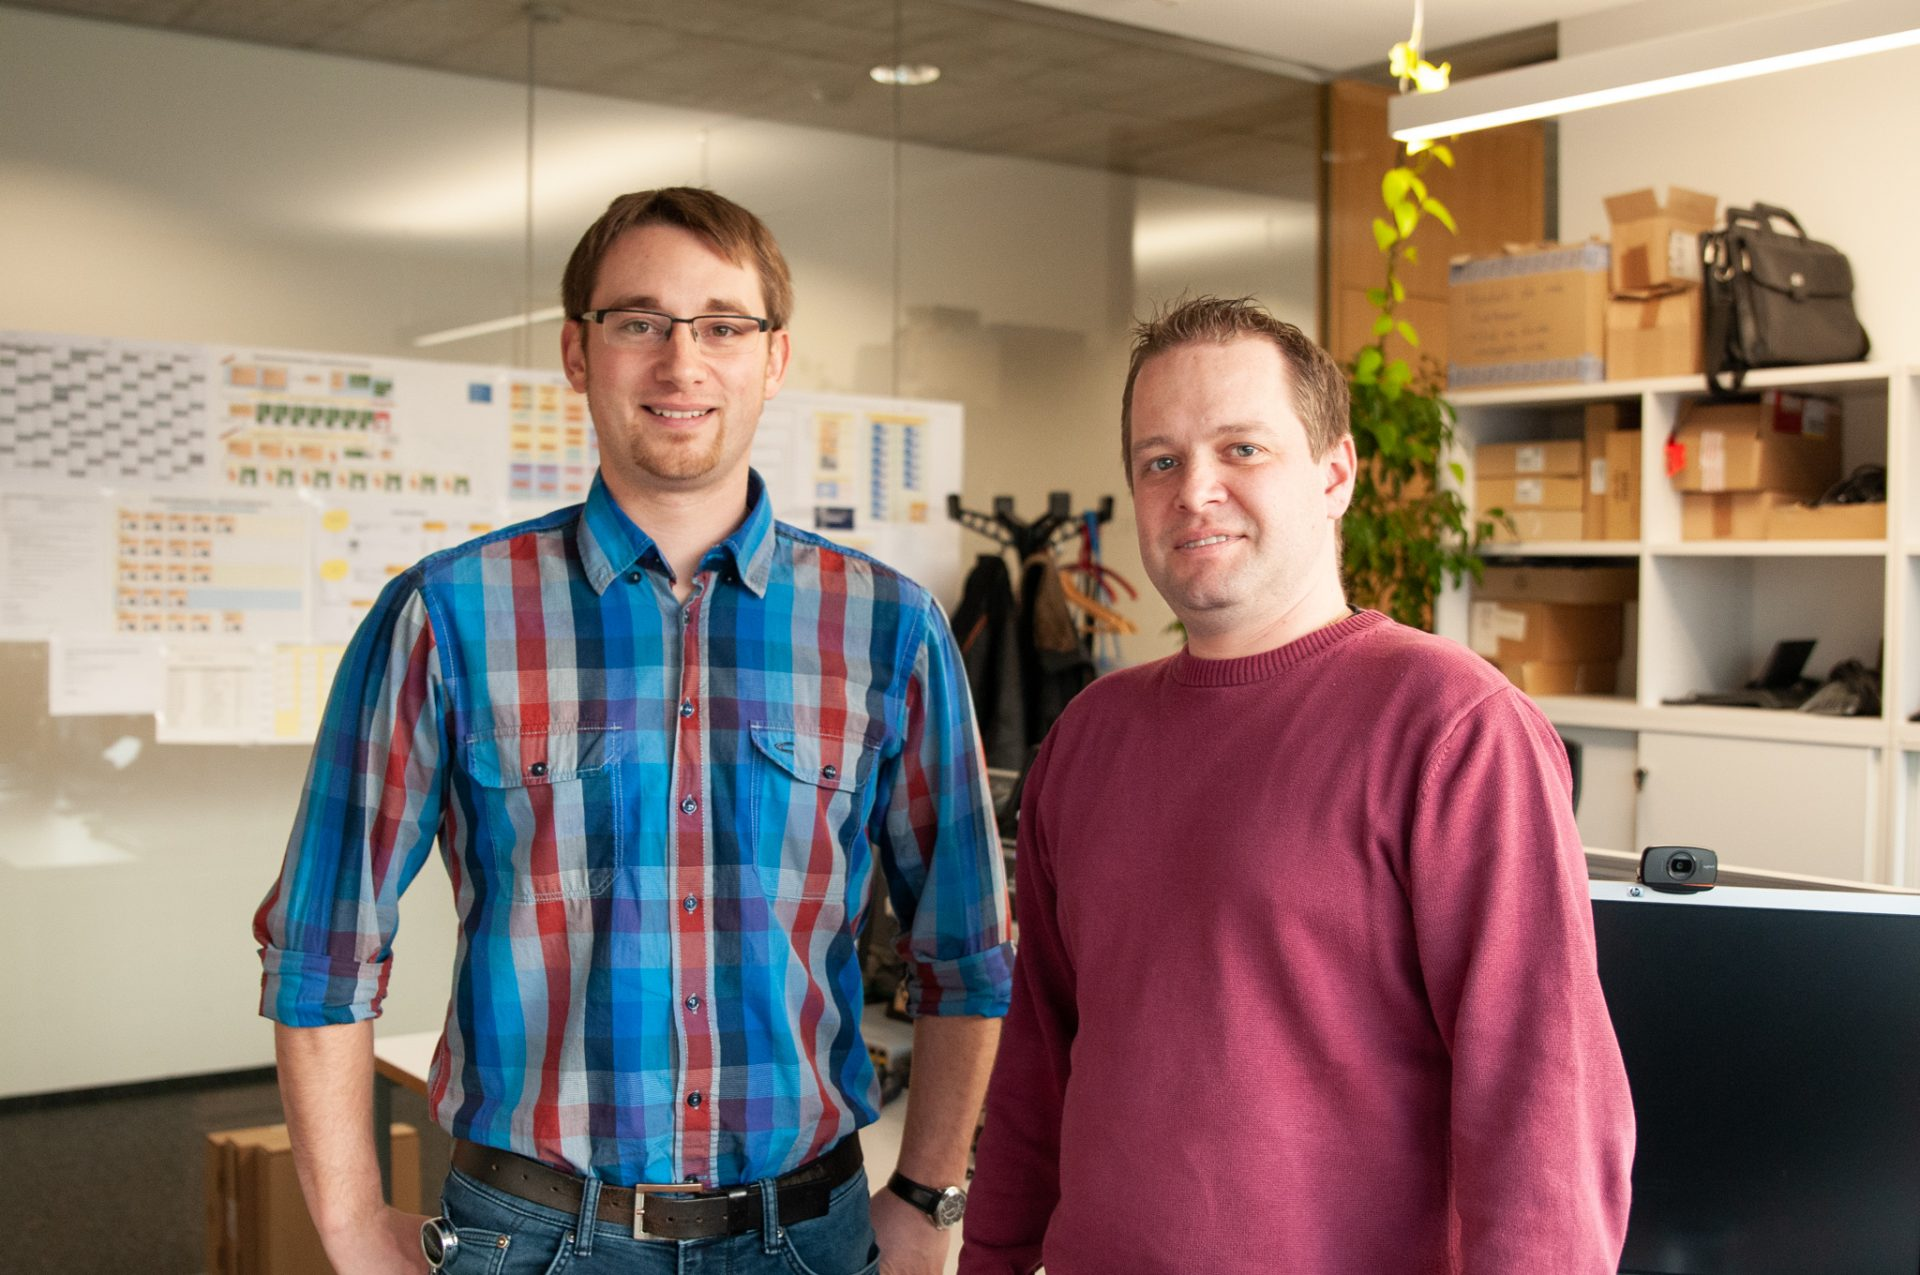 Tobias Oberascher and Gernot Striednig work for the telephone support